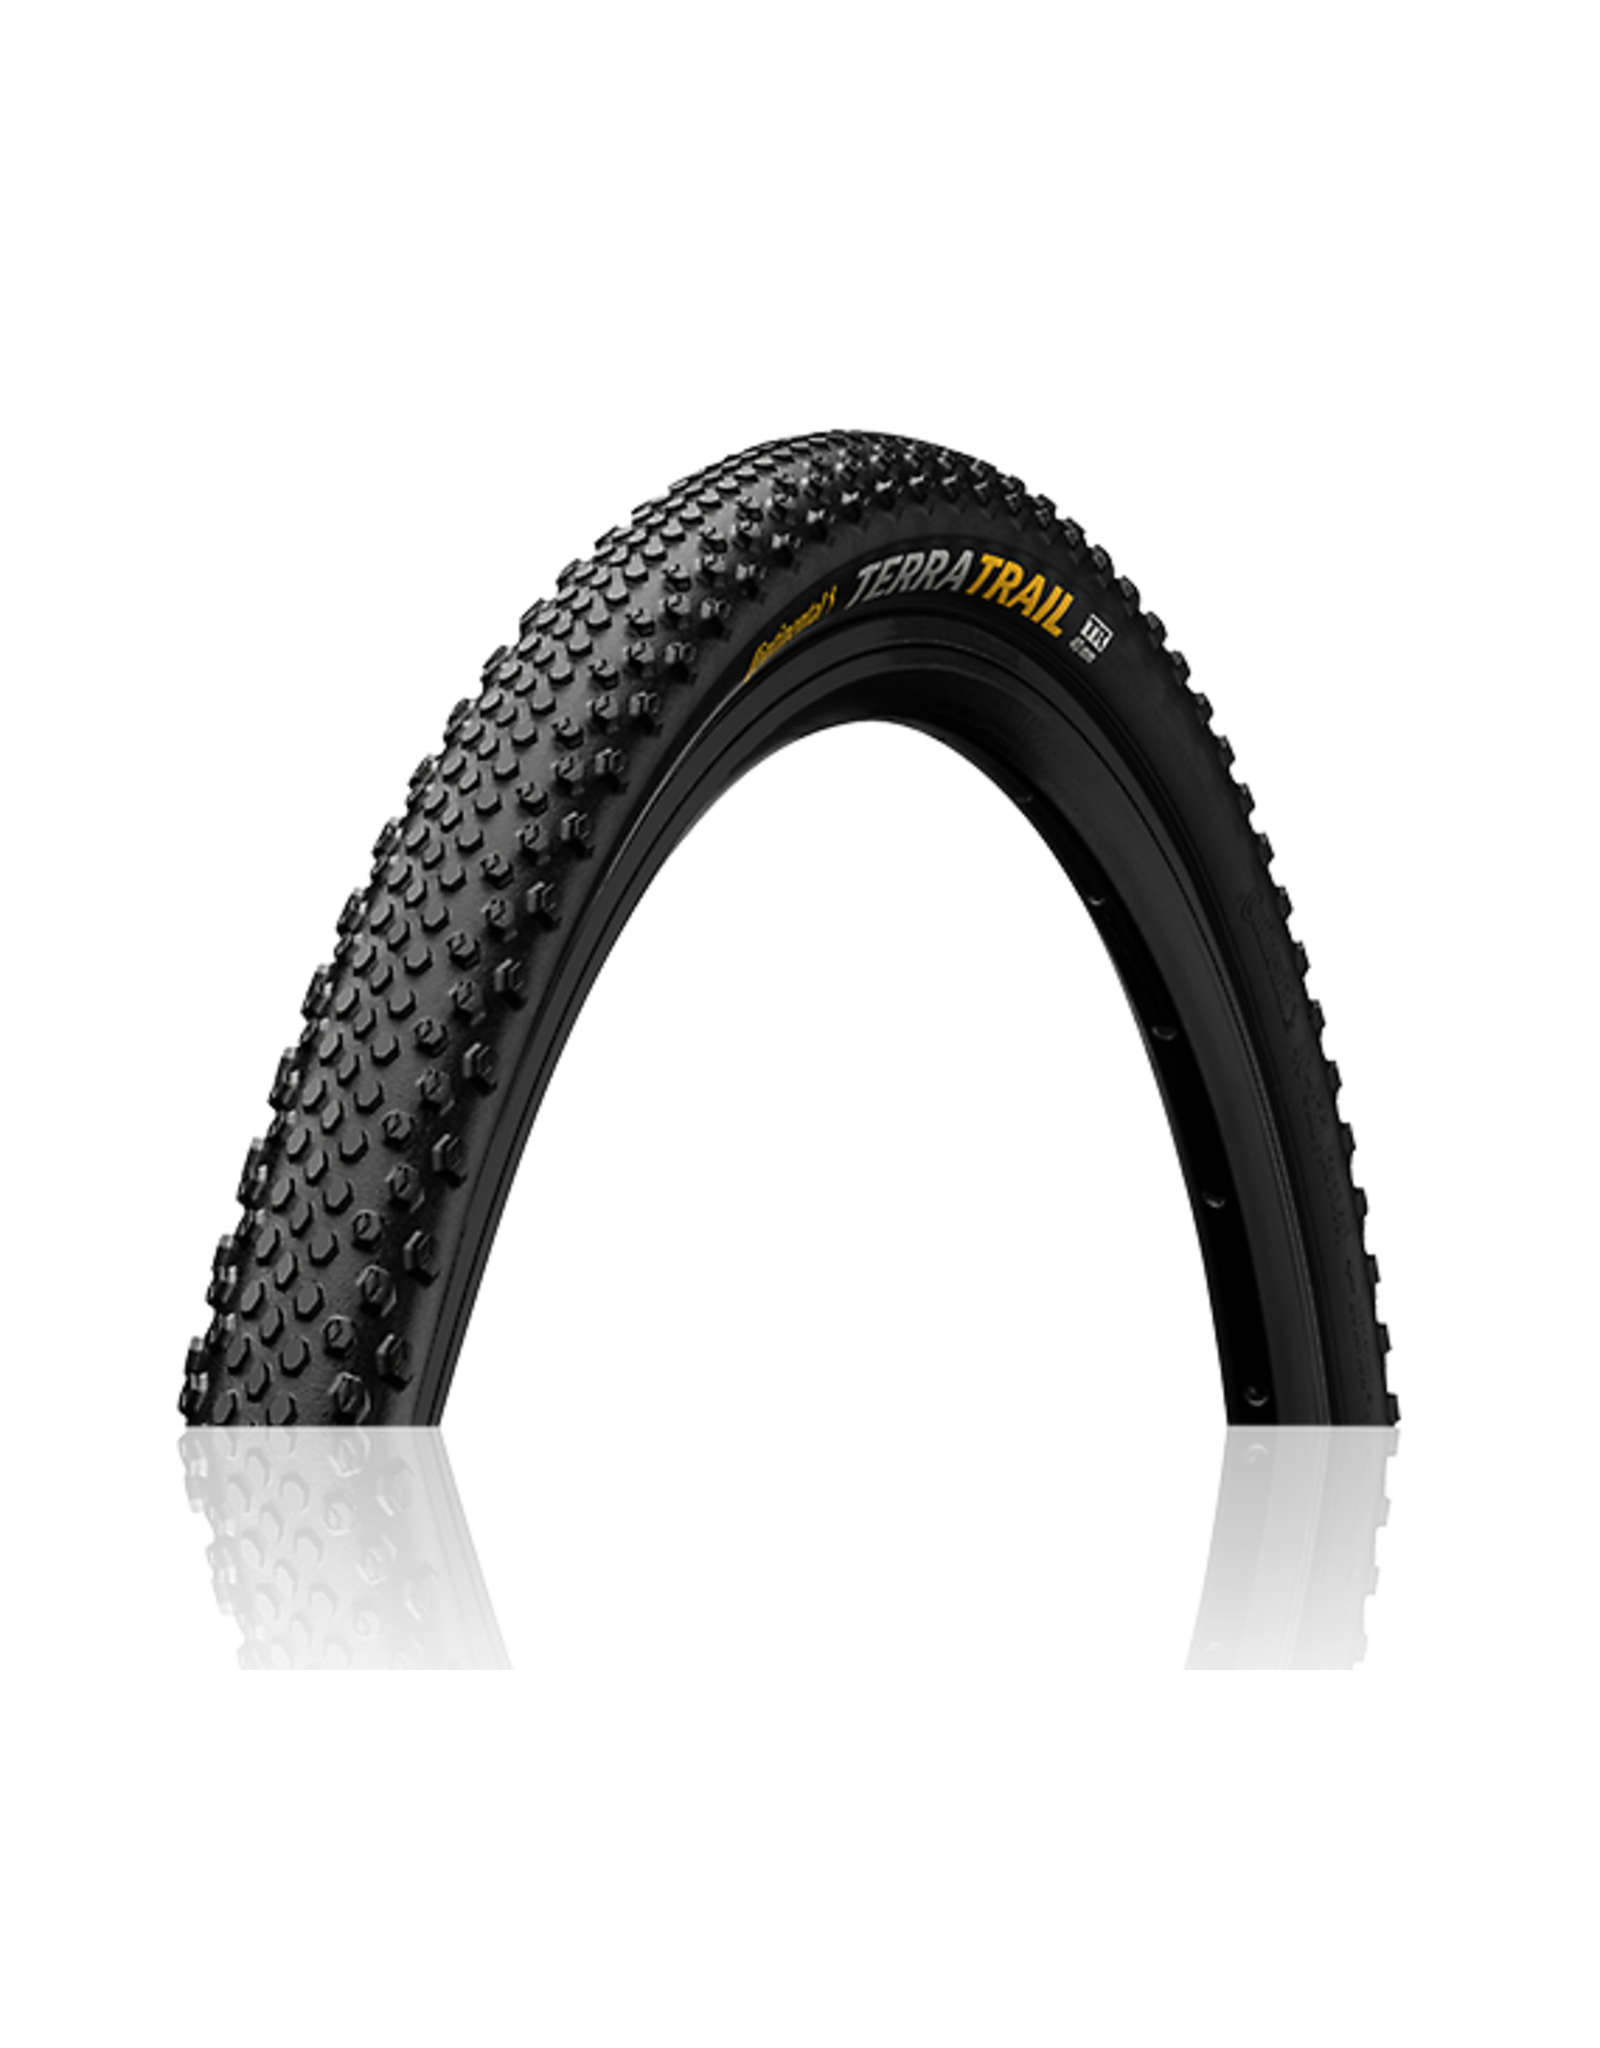 Continental Continental - Gravel & CX Tires Terra Trail 700 x 40 Fold ProTection TR